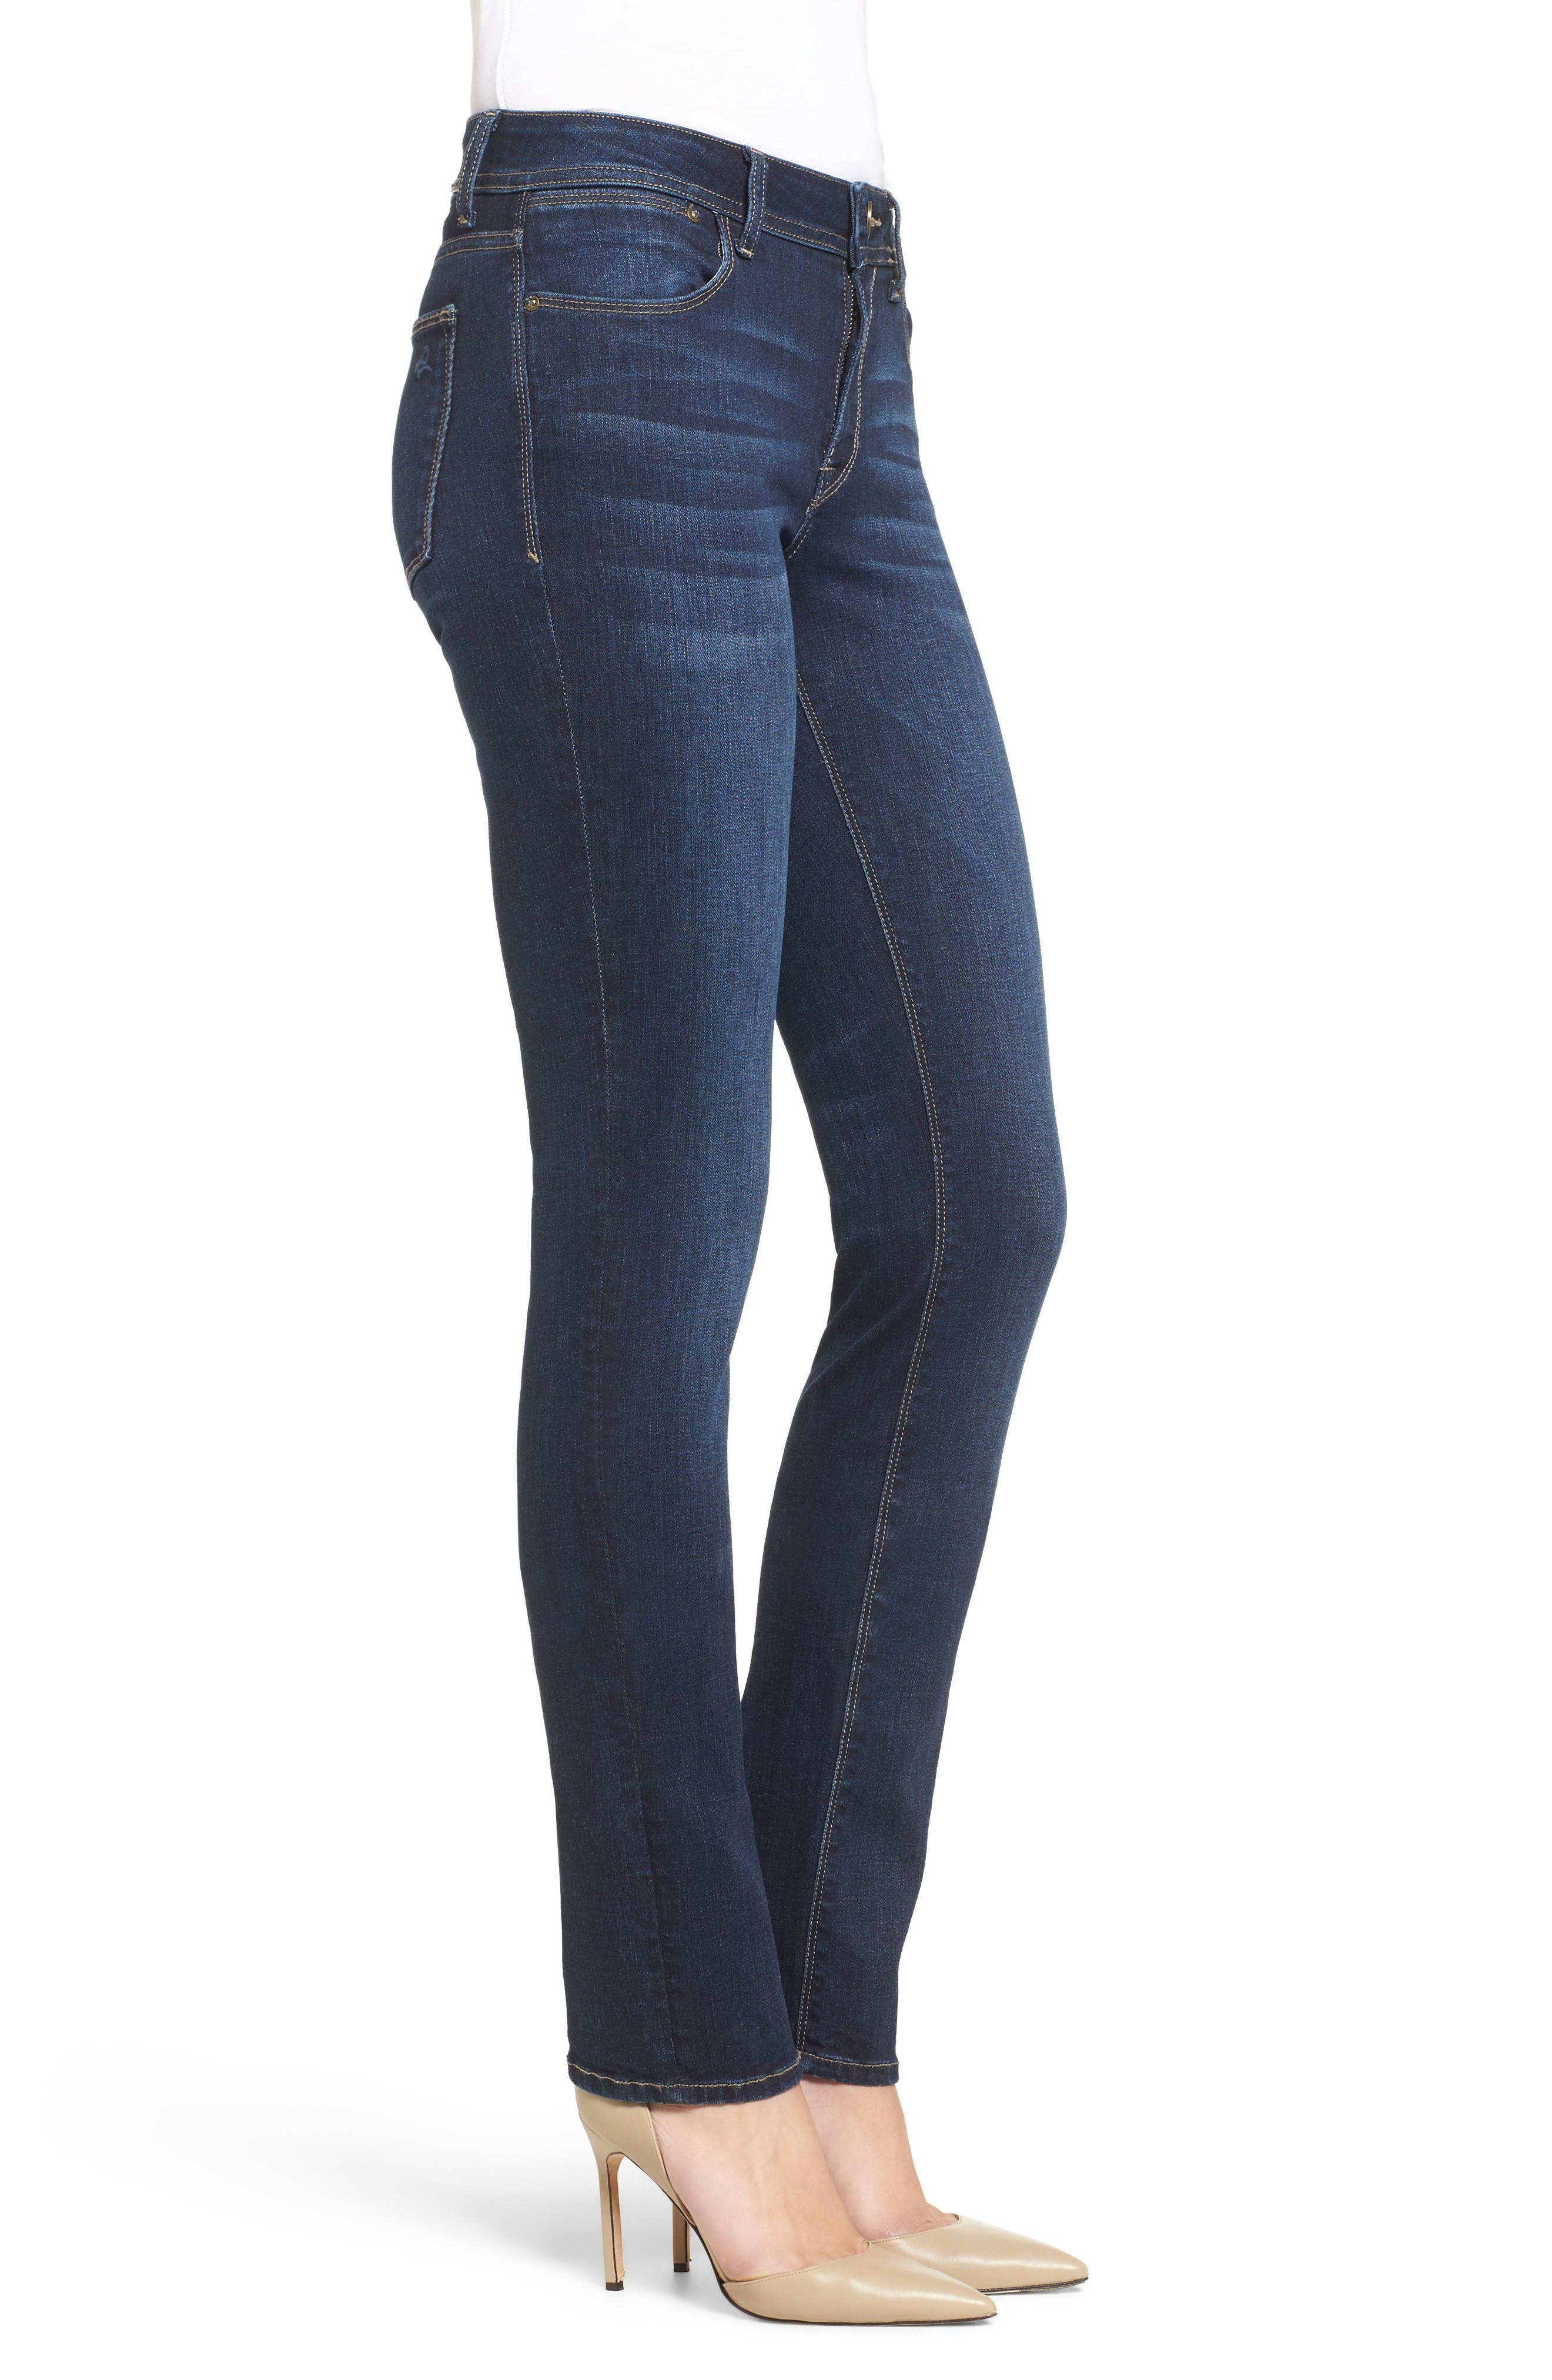 Alternate Image 3  - DL1961 'Coco' Curvy Slim Straight Leg Jeans (Atlas)